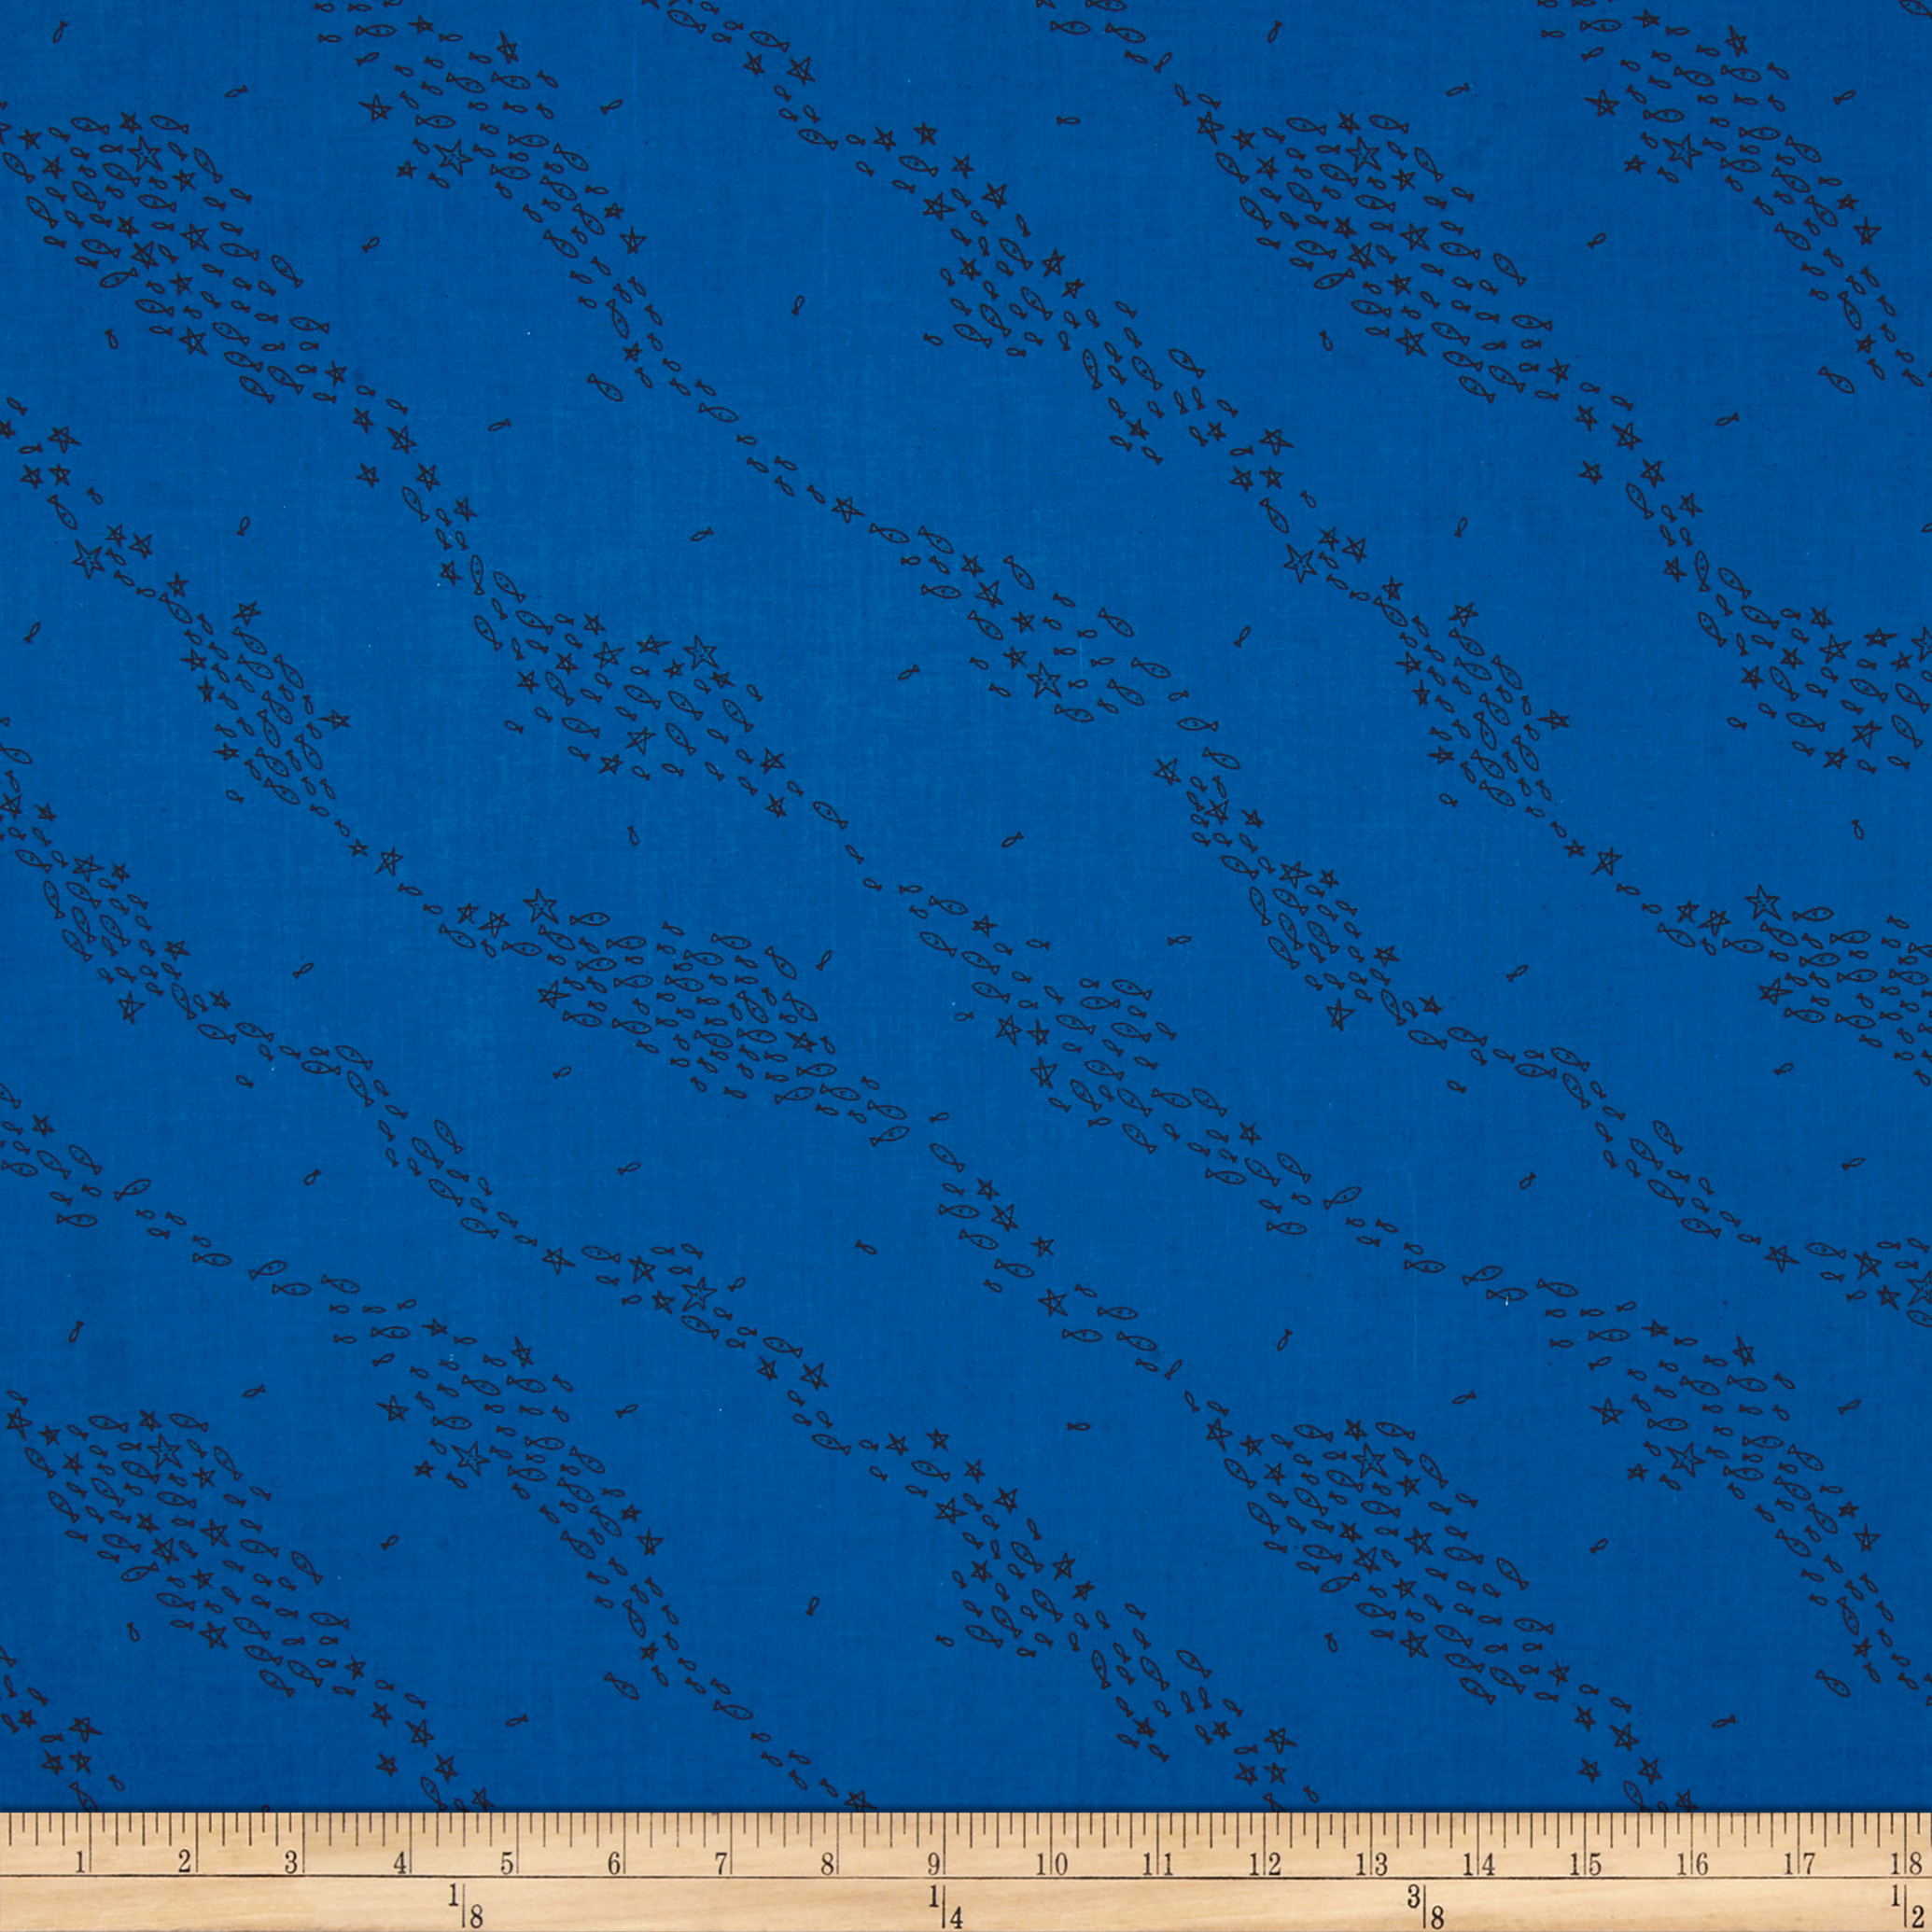 Image of Cotton + Steel Kujira & Star School Marine Fabric